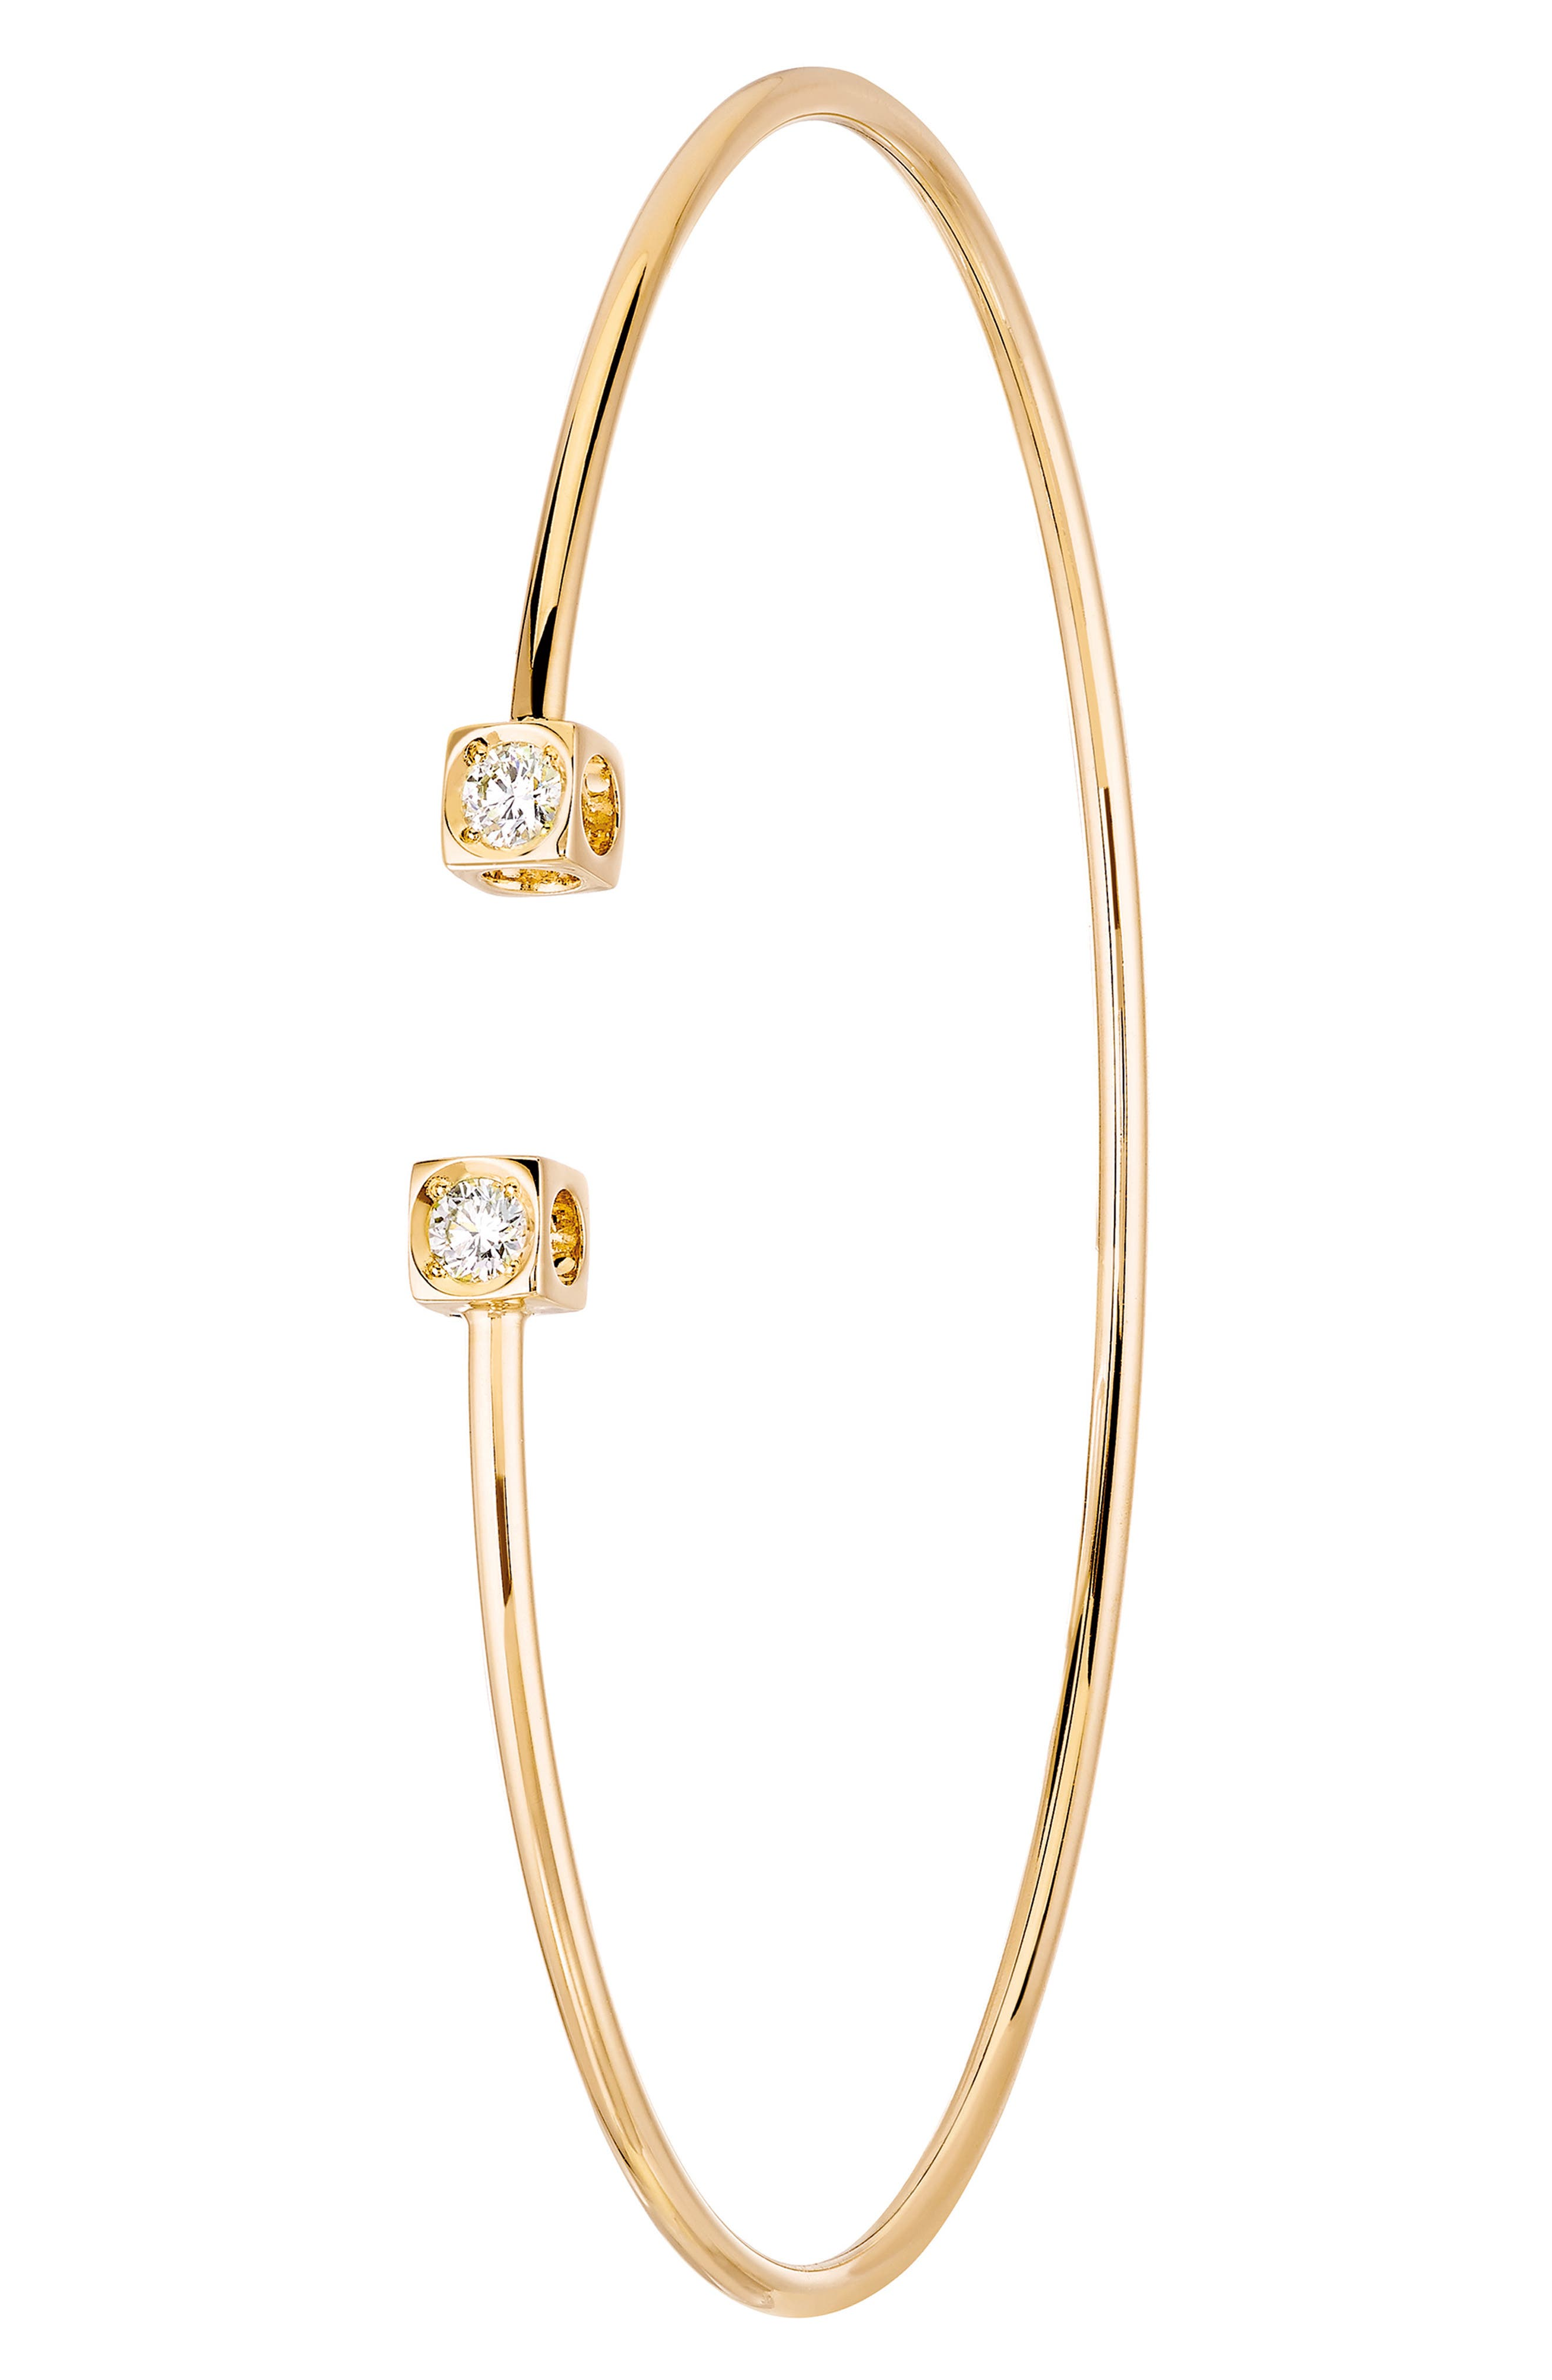 DINH VAN Le Cube Diamant Small 18K Gold Flex Bracelet in Yellow Gold